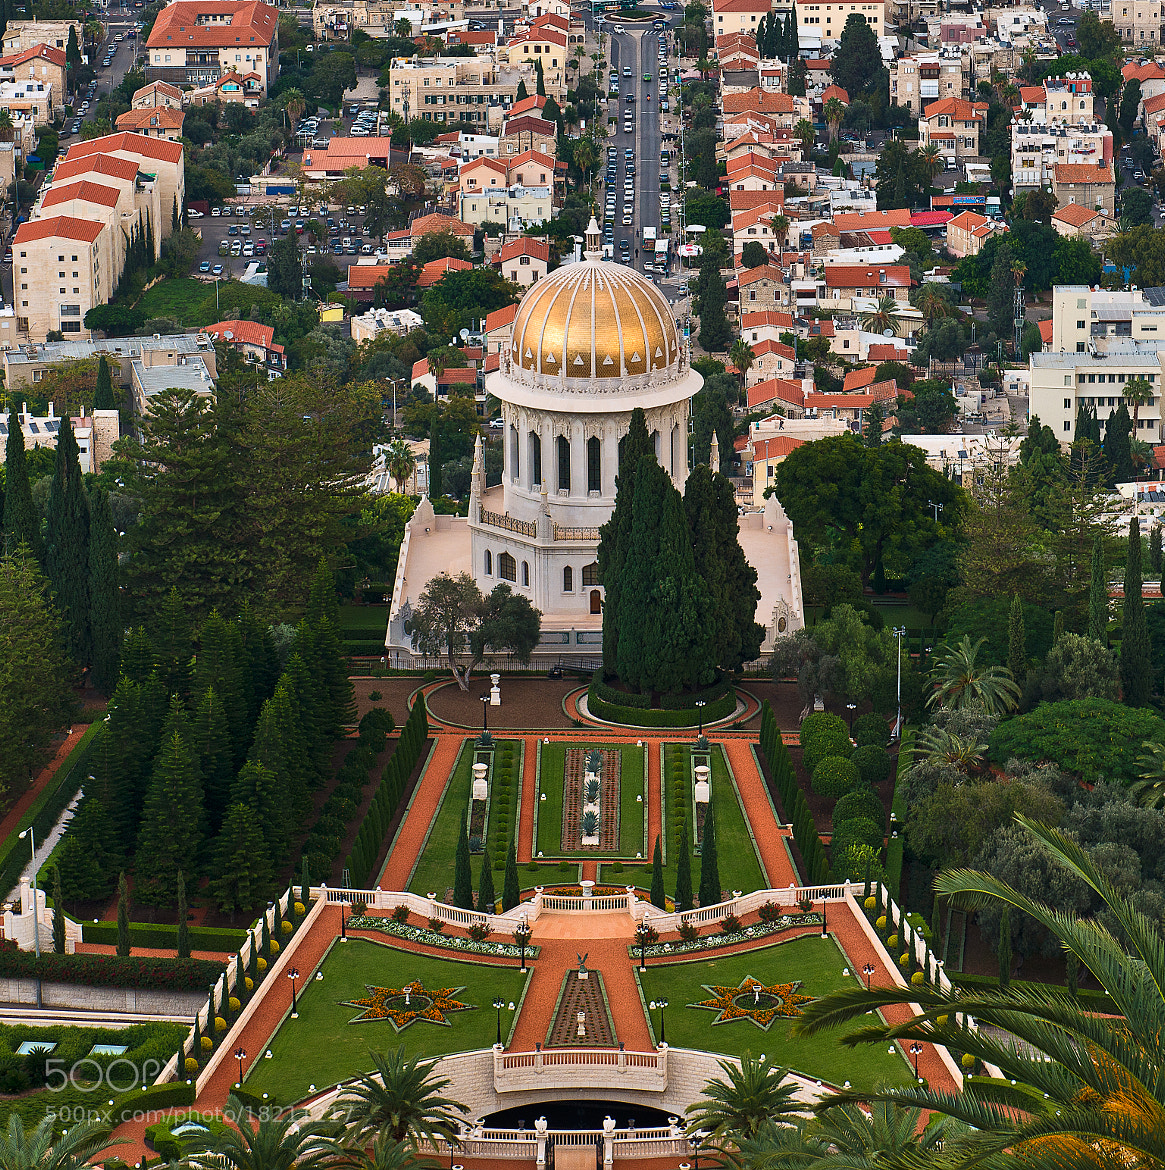 Photograph Haifa Iconic View by Natasha Pnini on 500px